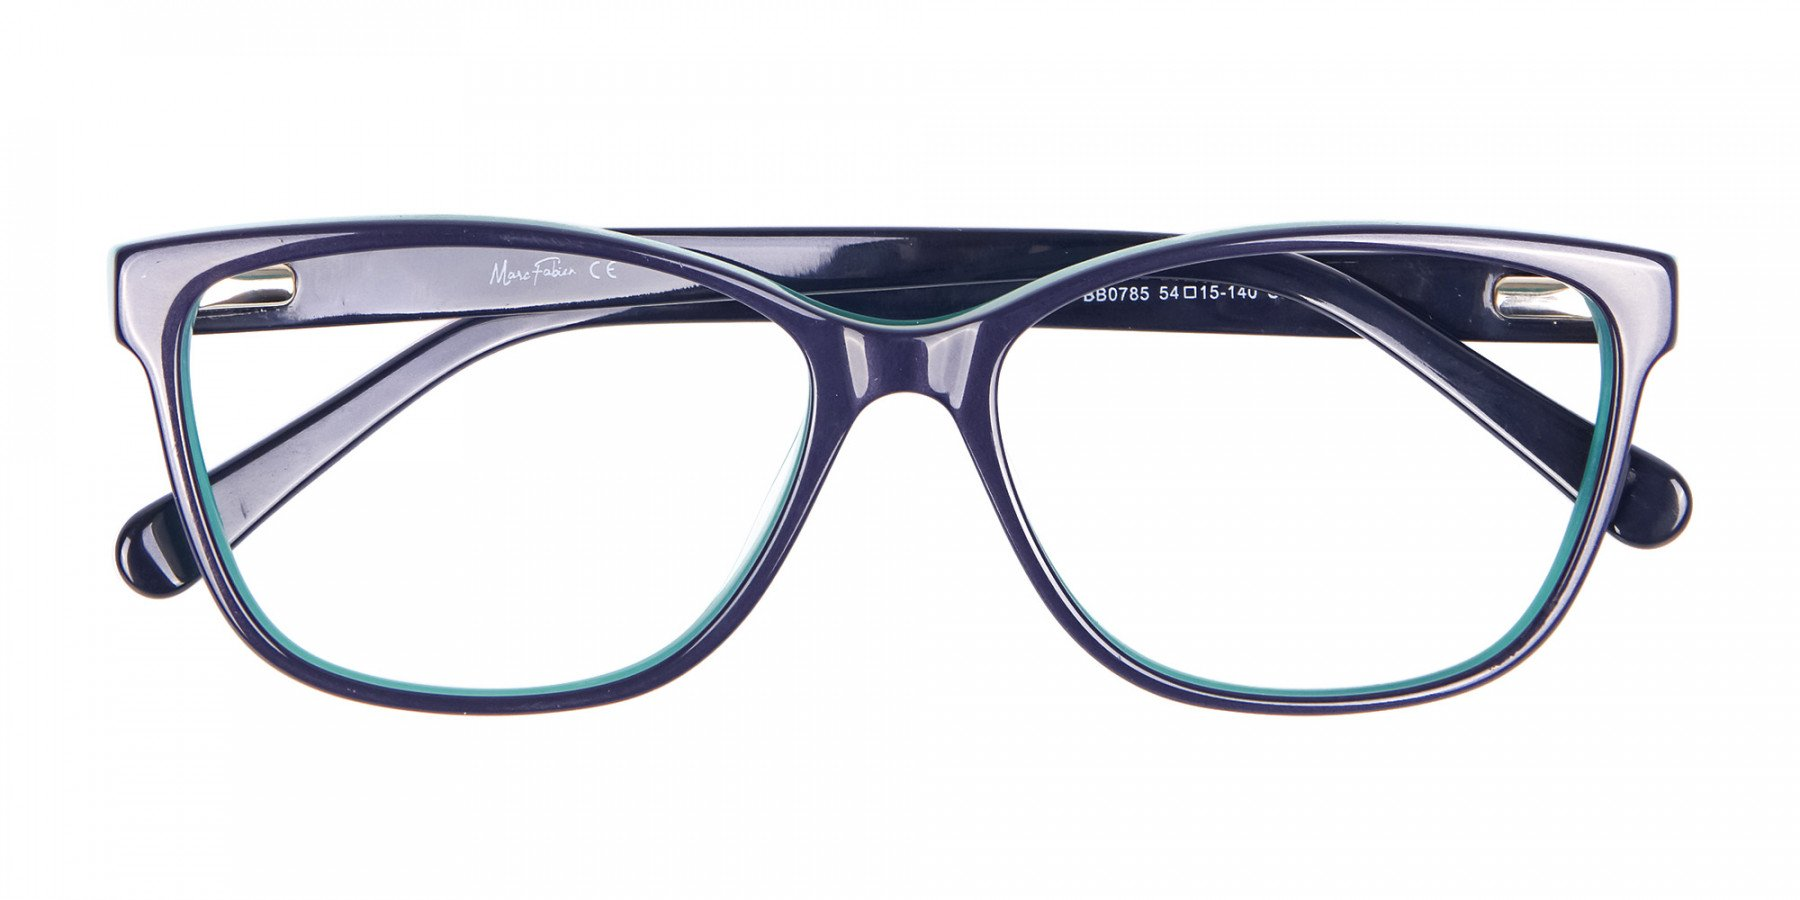 Navy Blue Rectangular Glasses With Flowery Printing - 1